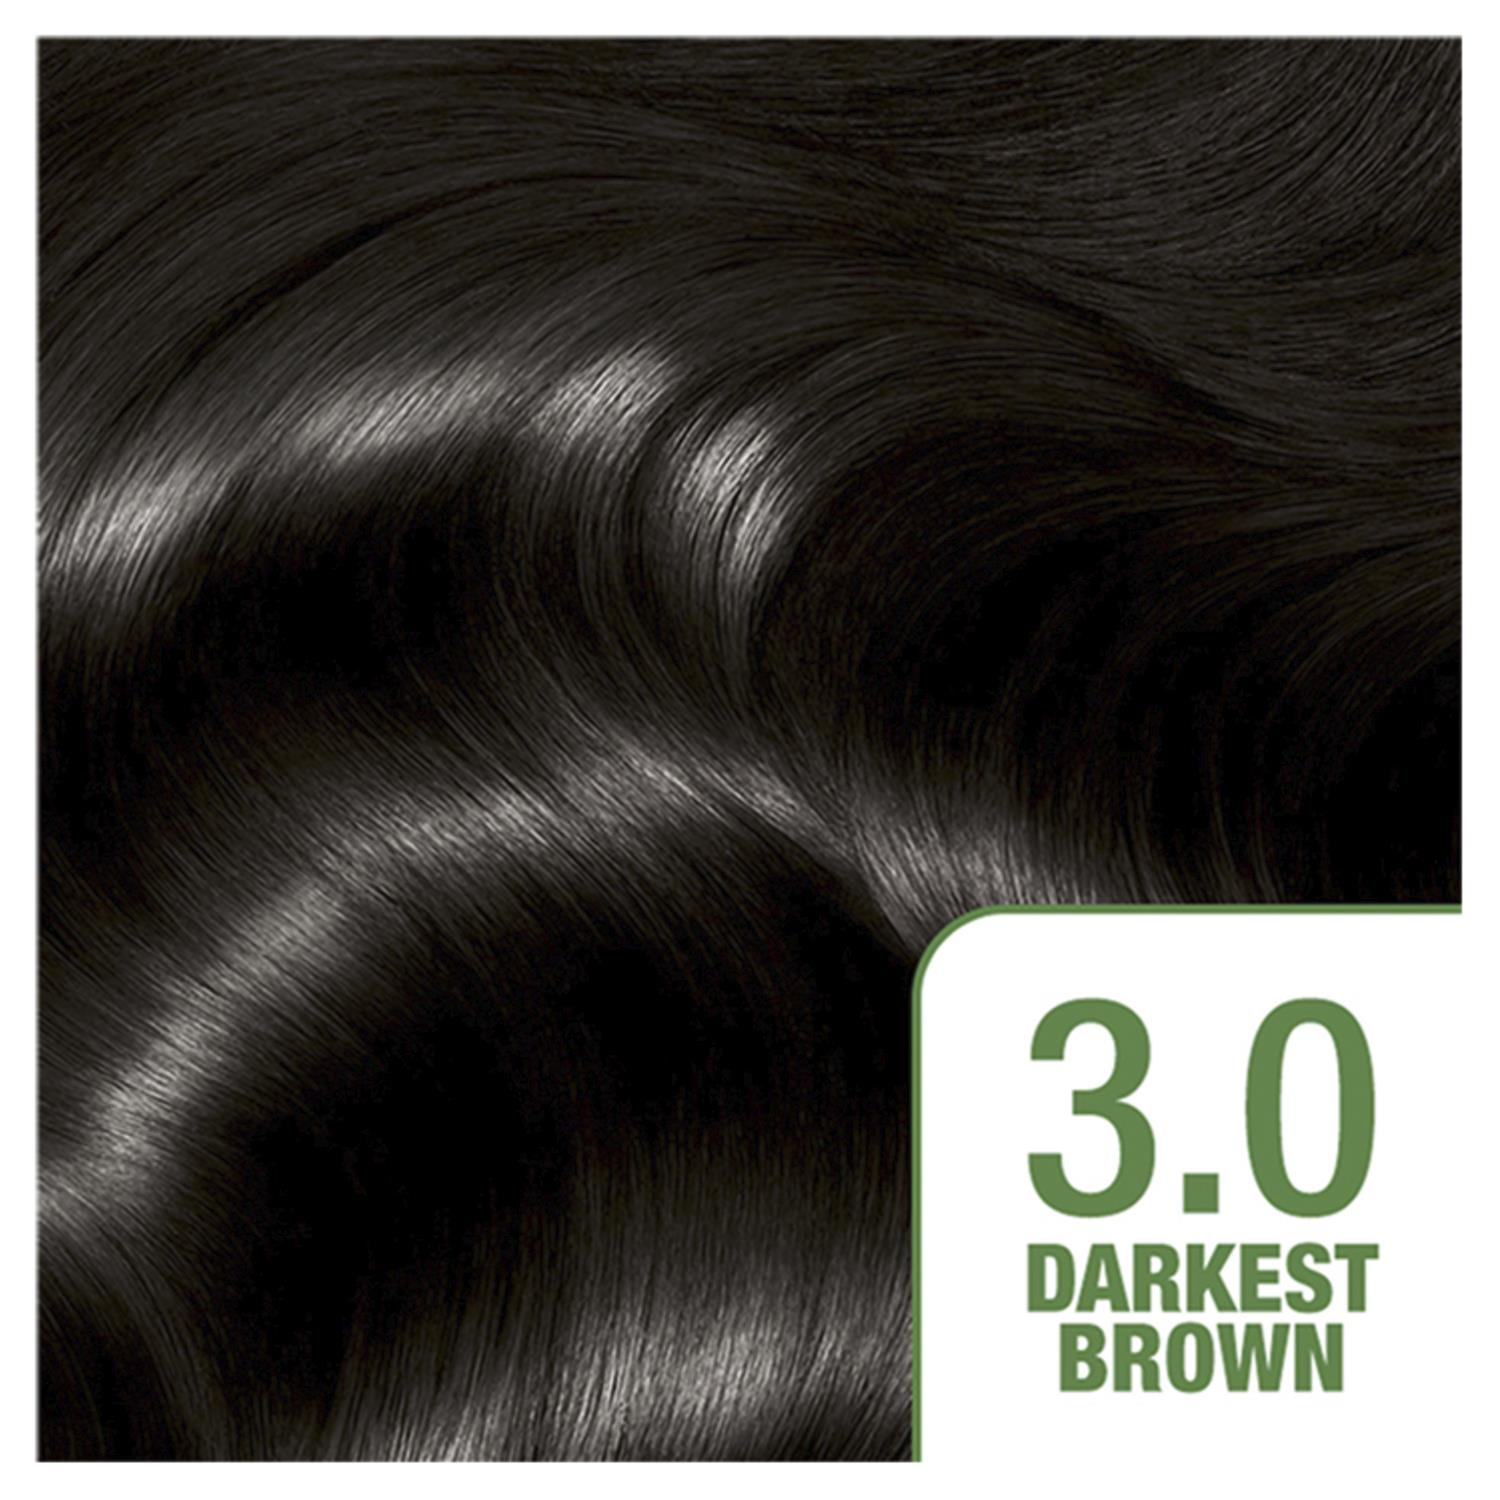 thumbnail 34 - 3 Pack Garnier Nutrisse Permanent Hair Dye With Different Shades